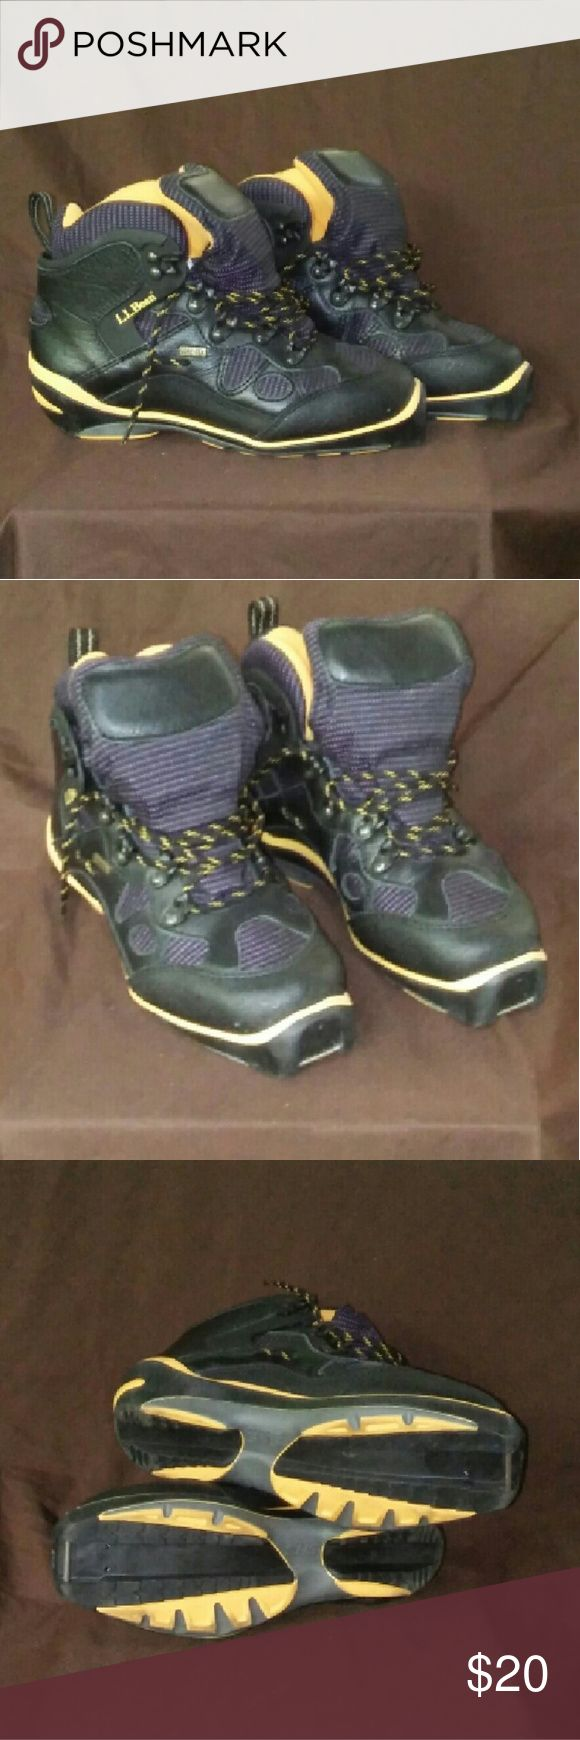 LL BEAN Cross Country Ski Boots NWOT LL Bean Gore-Tex Cross Country Ski Boots. SNS Profil (one metal bar in the toe of each boot). Women's 38. Perfect Condition. From a smoke free home. Make an offer! LL Bean Shoes Athletic Shoes